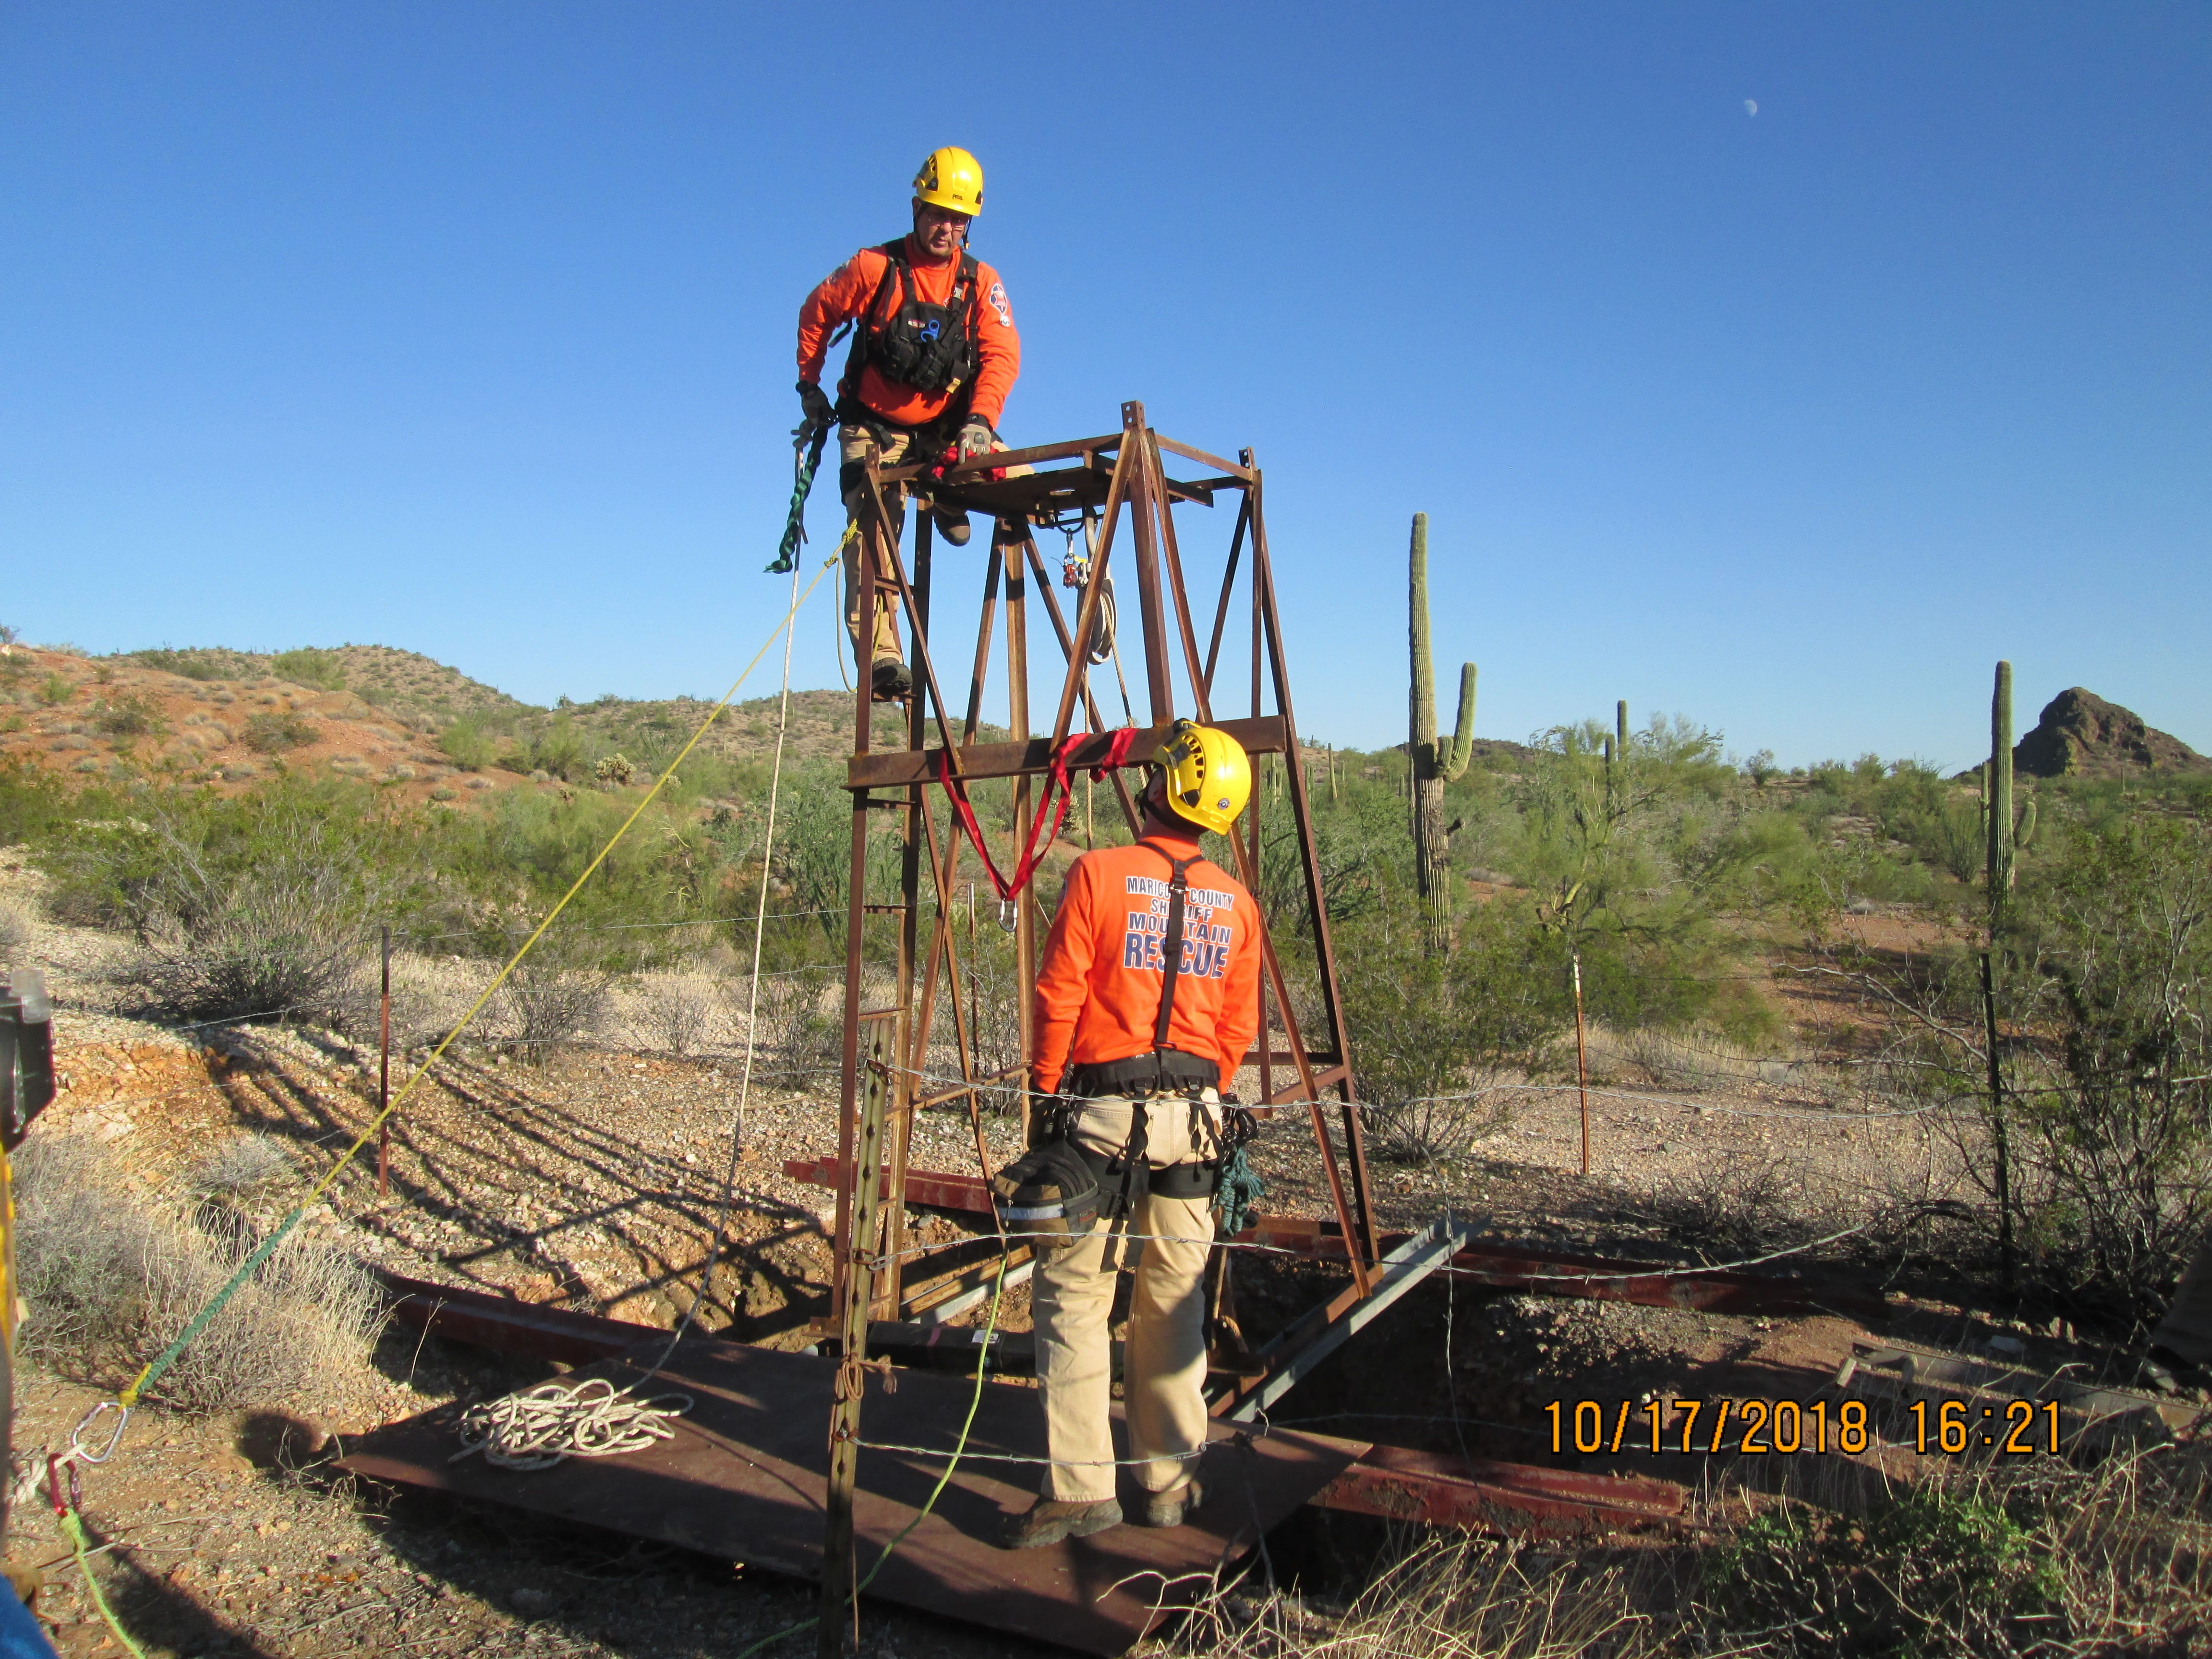 Rescue of man from Arizona mine shaft.